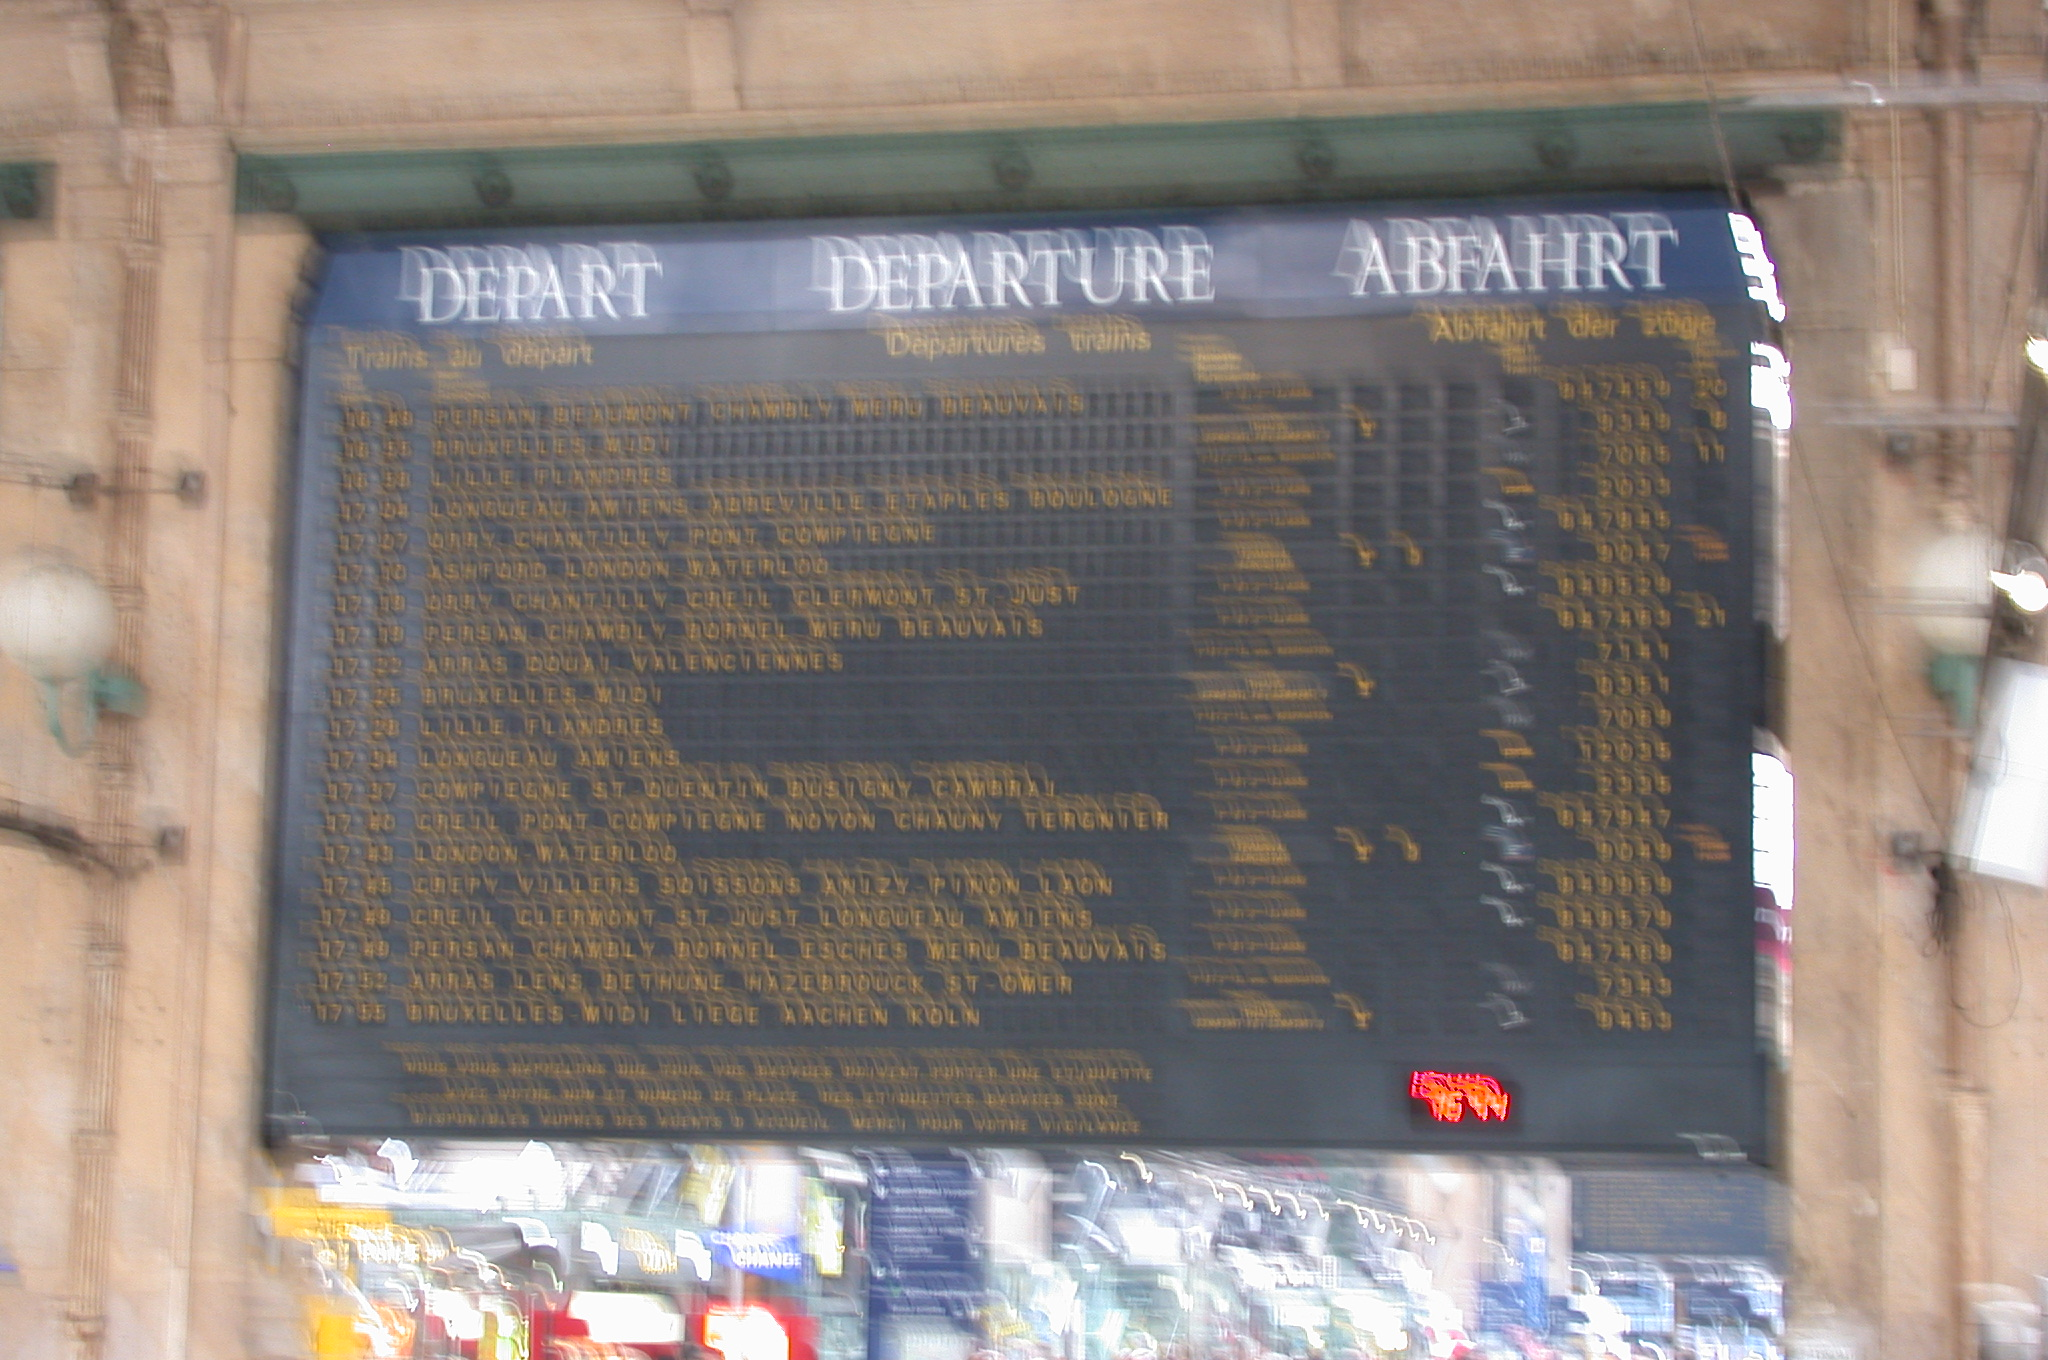 DSCN0001.jpg - The departure board at Gare du Nord, Paris.